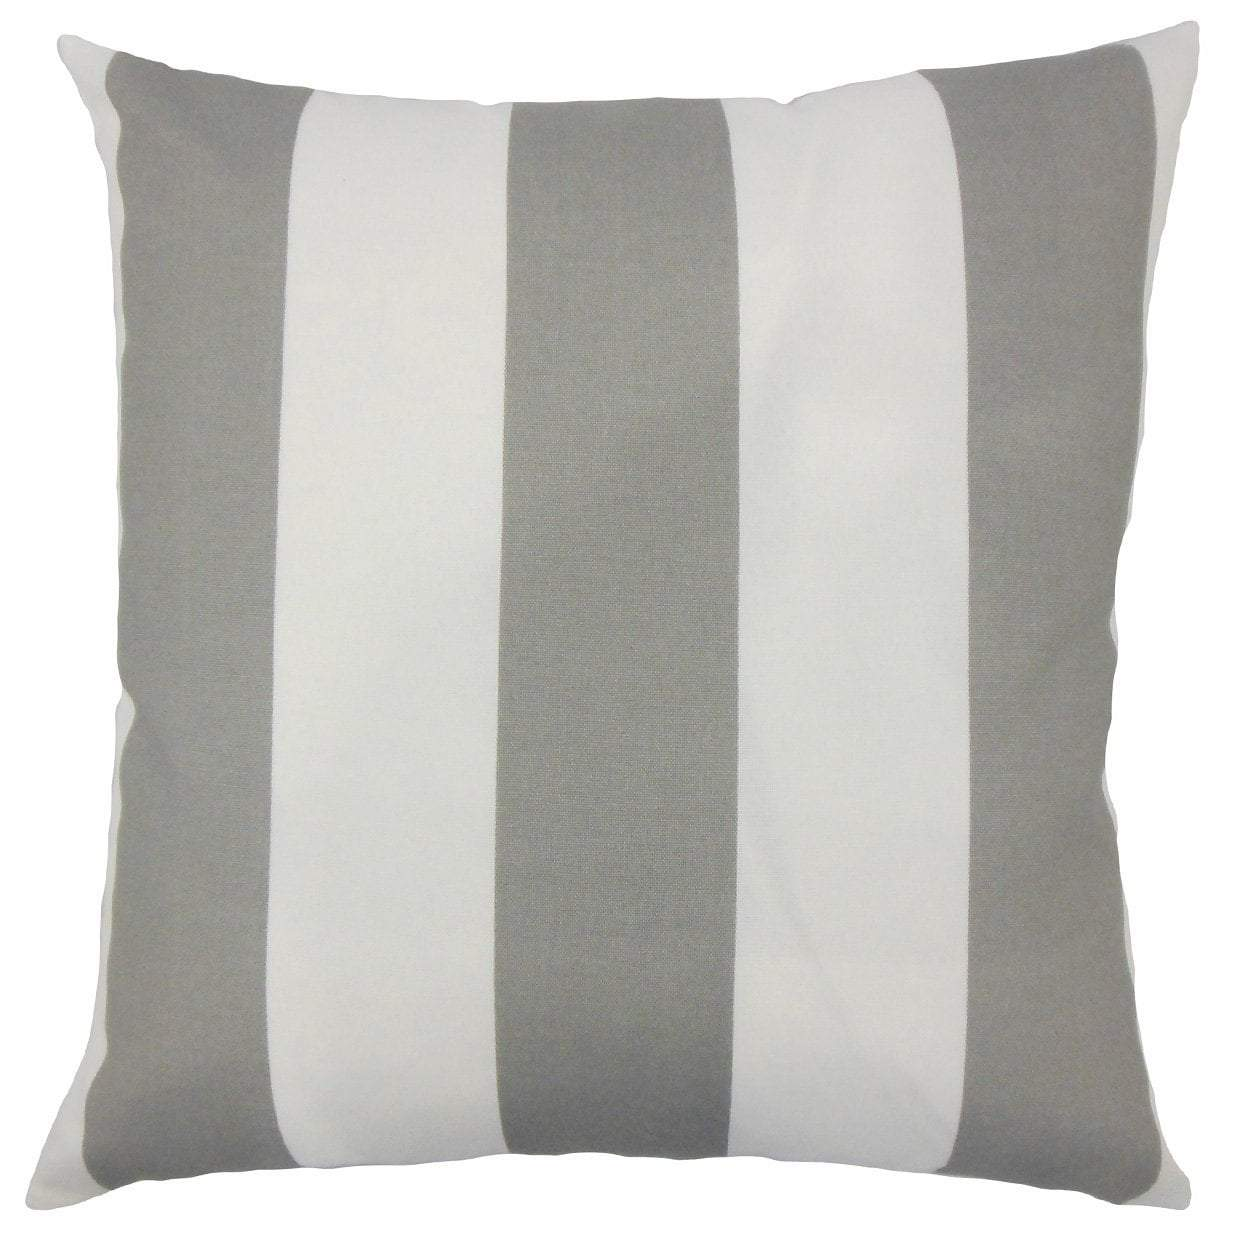 Gray Synthetic Striped Coastal Throw Pillow Cover